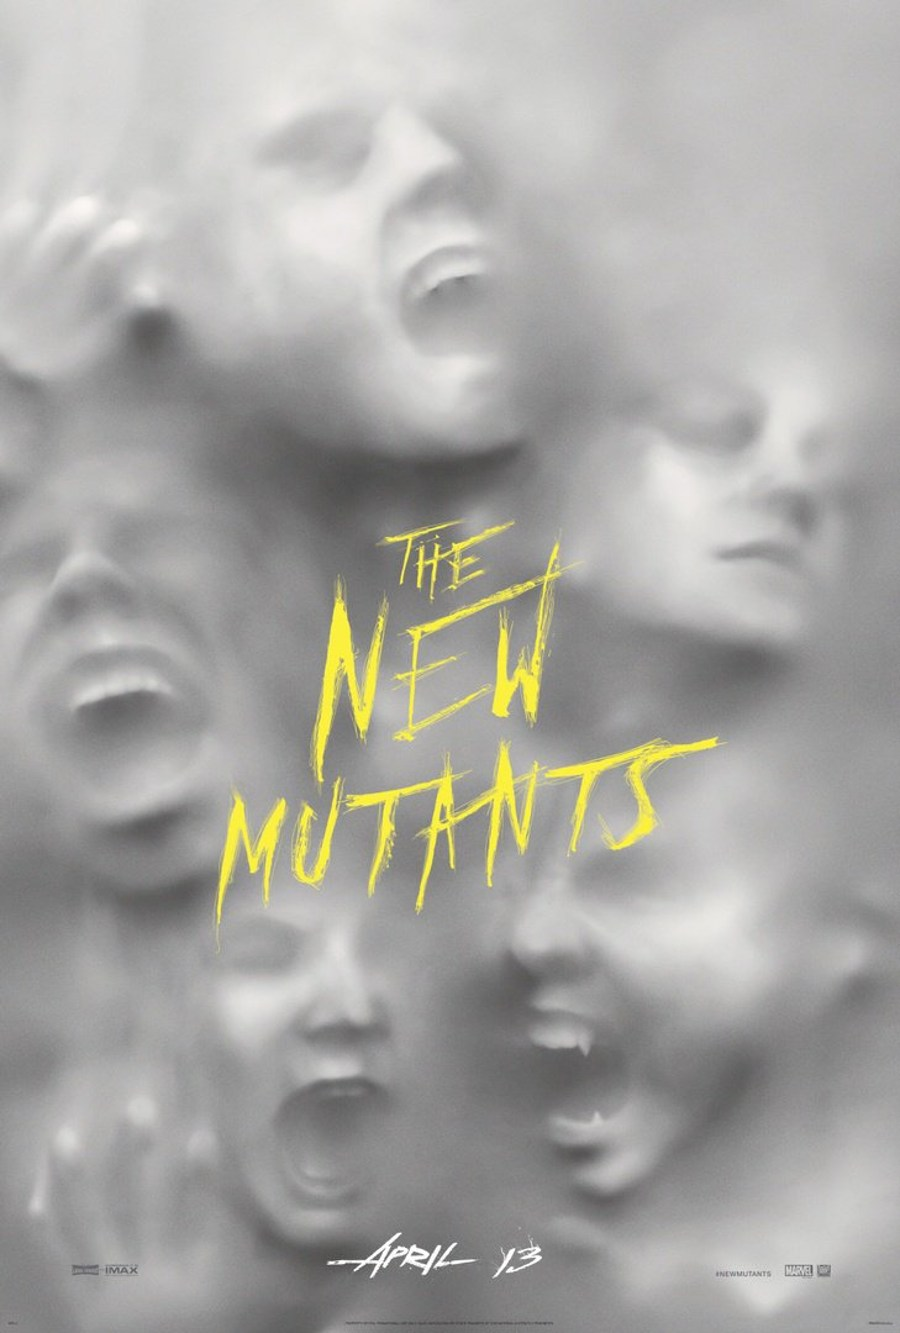 the-new-mutants-movie-poster-1063557.jpg